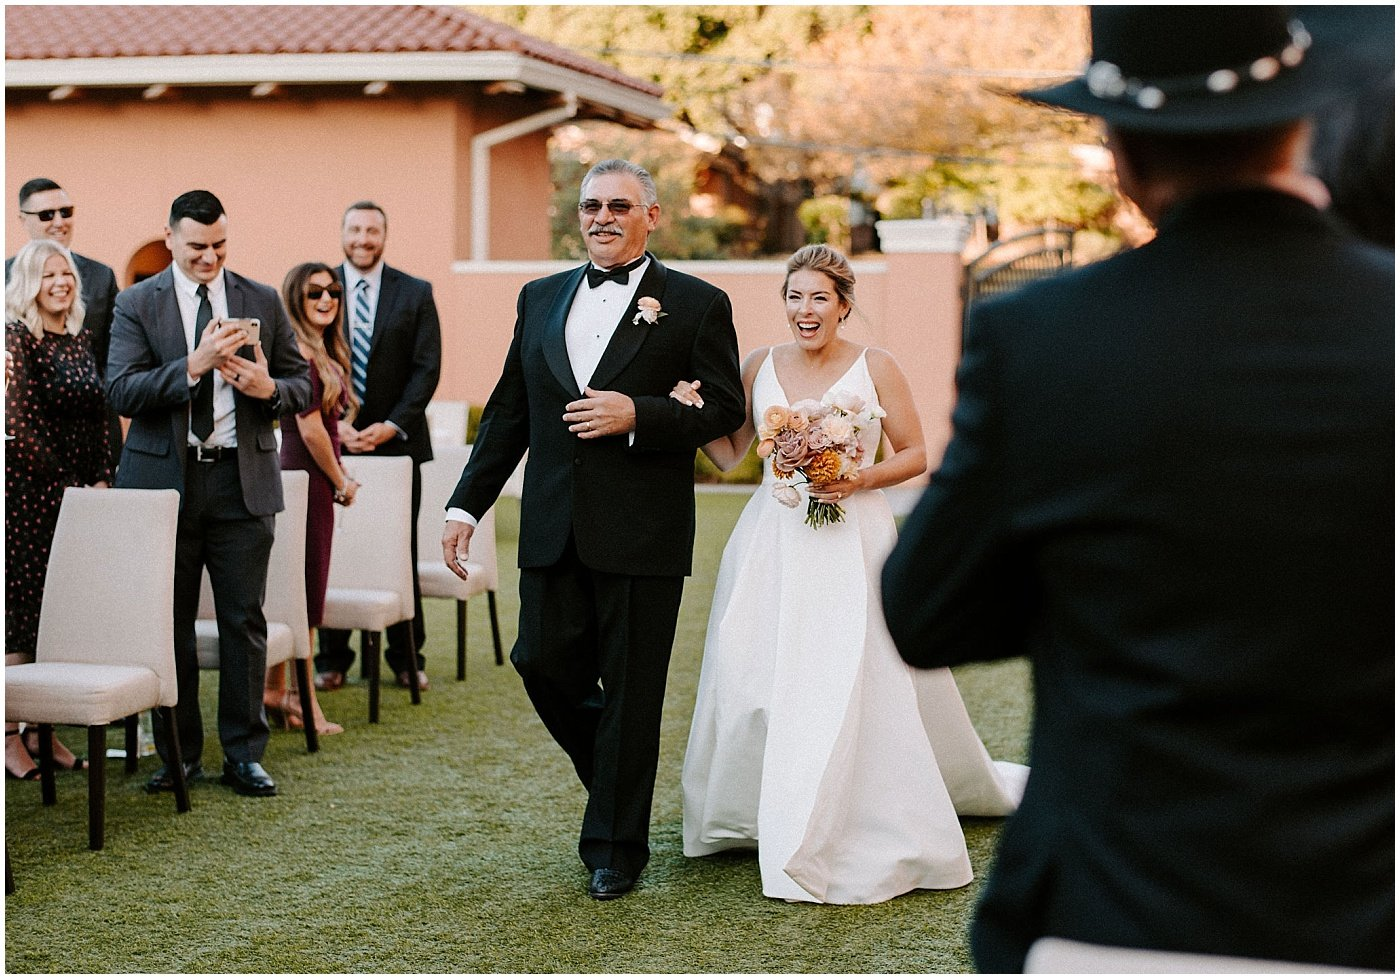 father and bride walking down the aisle